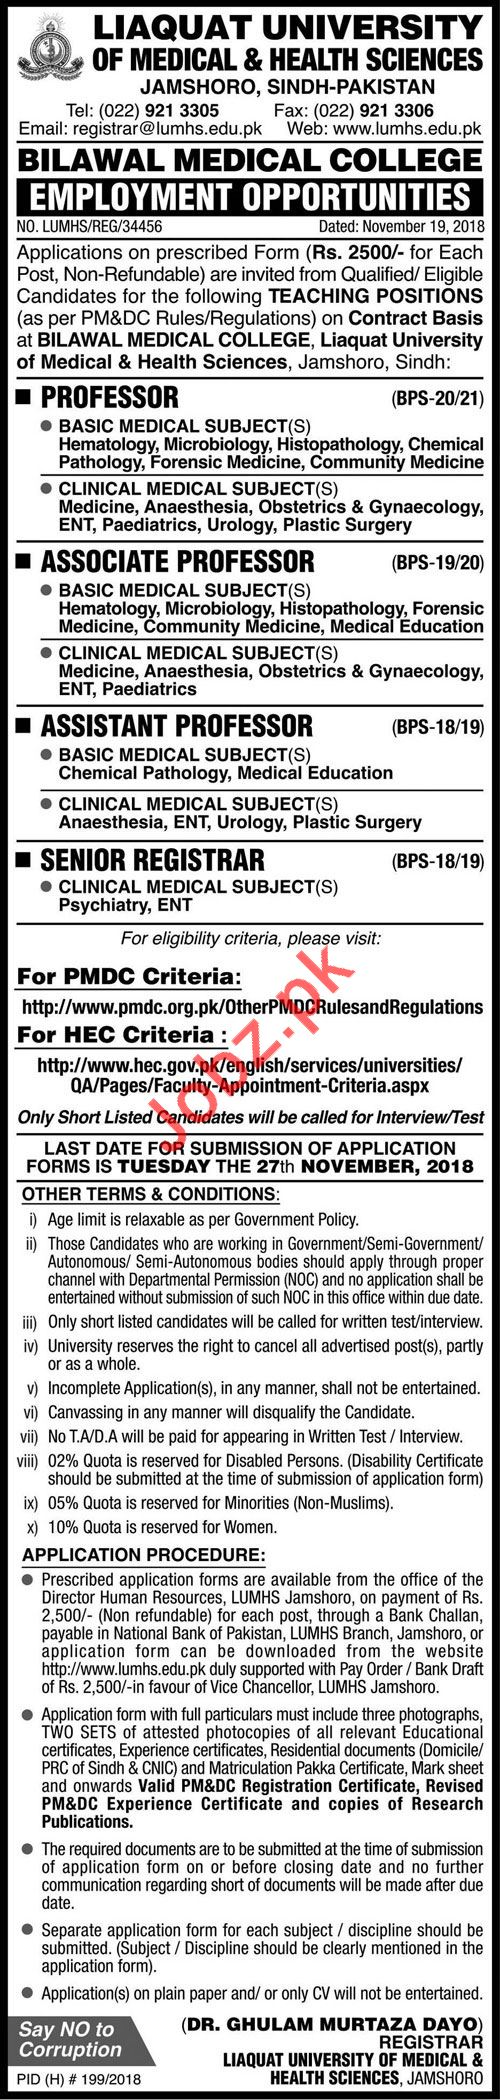 Liaquat University of Medical & Health Sciences Medical Jobs